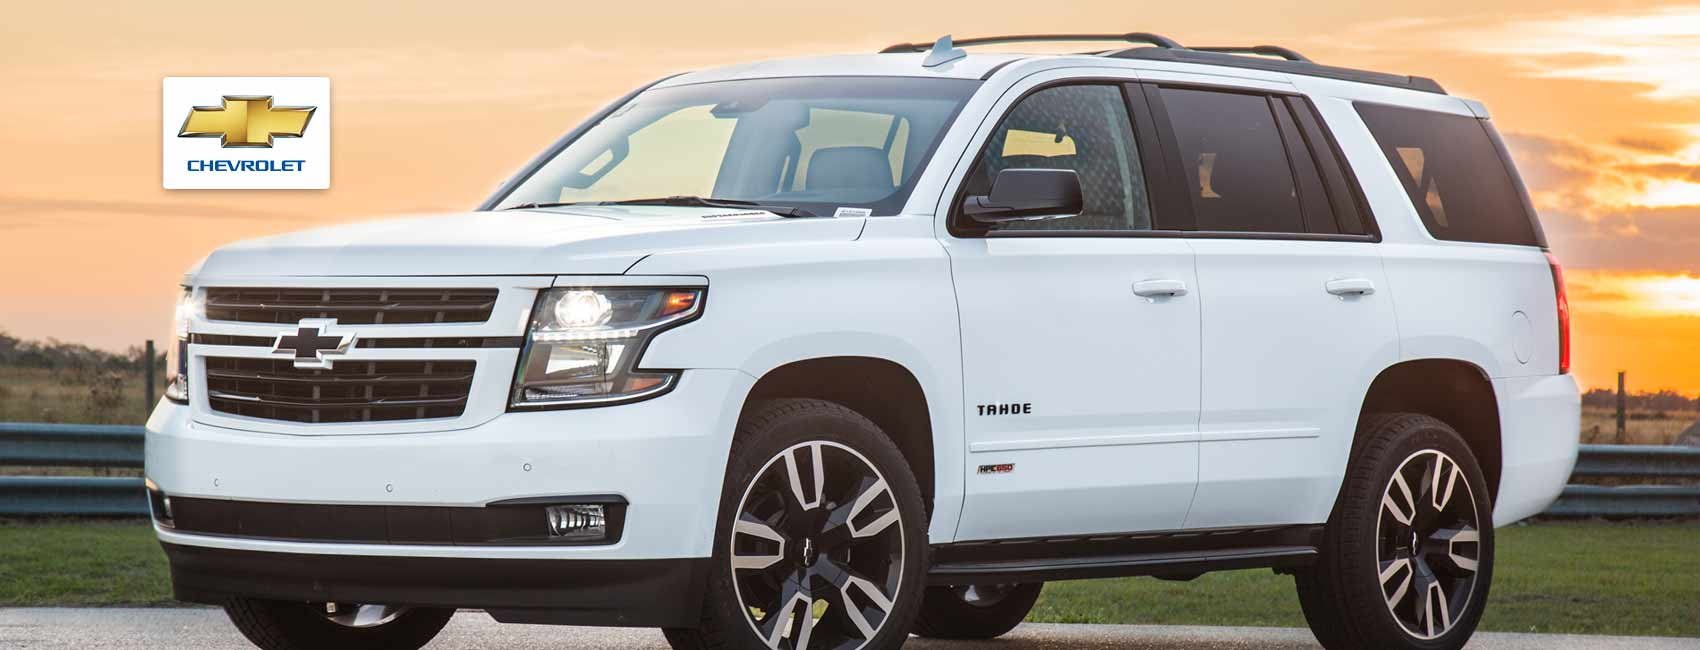 Chevy Tahoe Parts - Buy Used Chevy Tahoe Parts Online @ Best Price